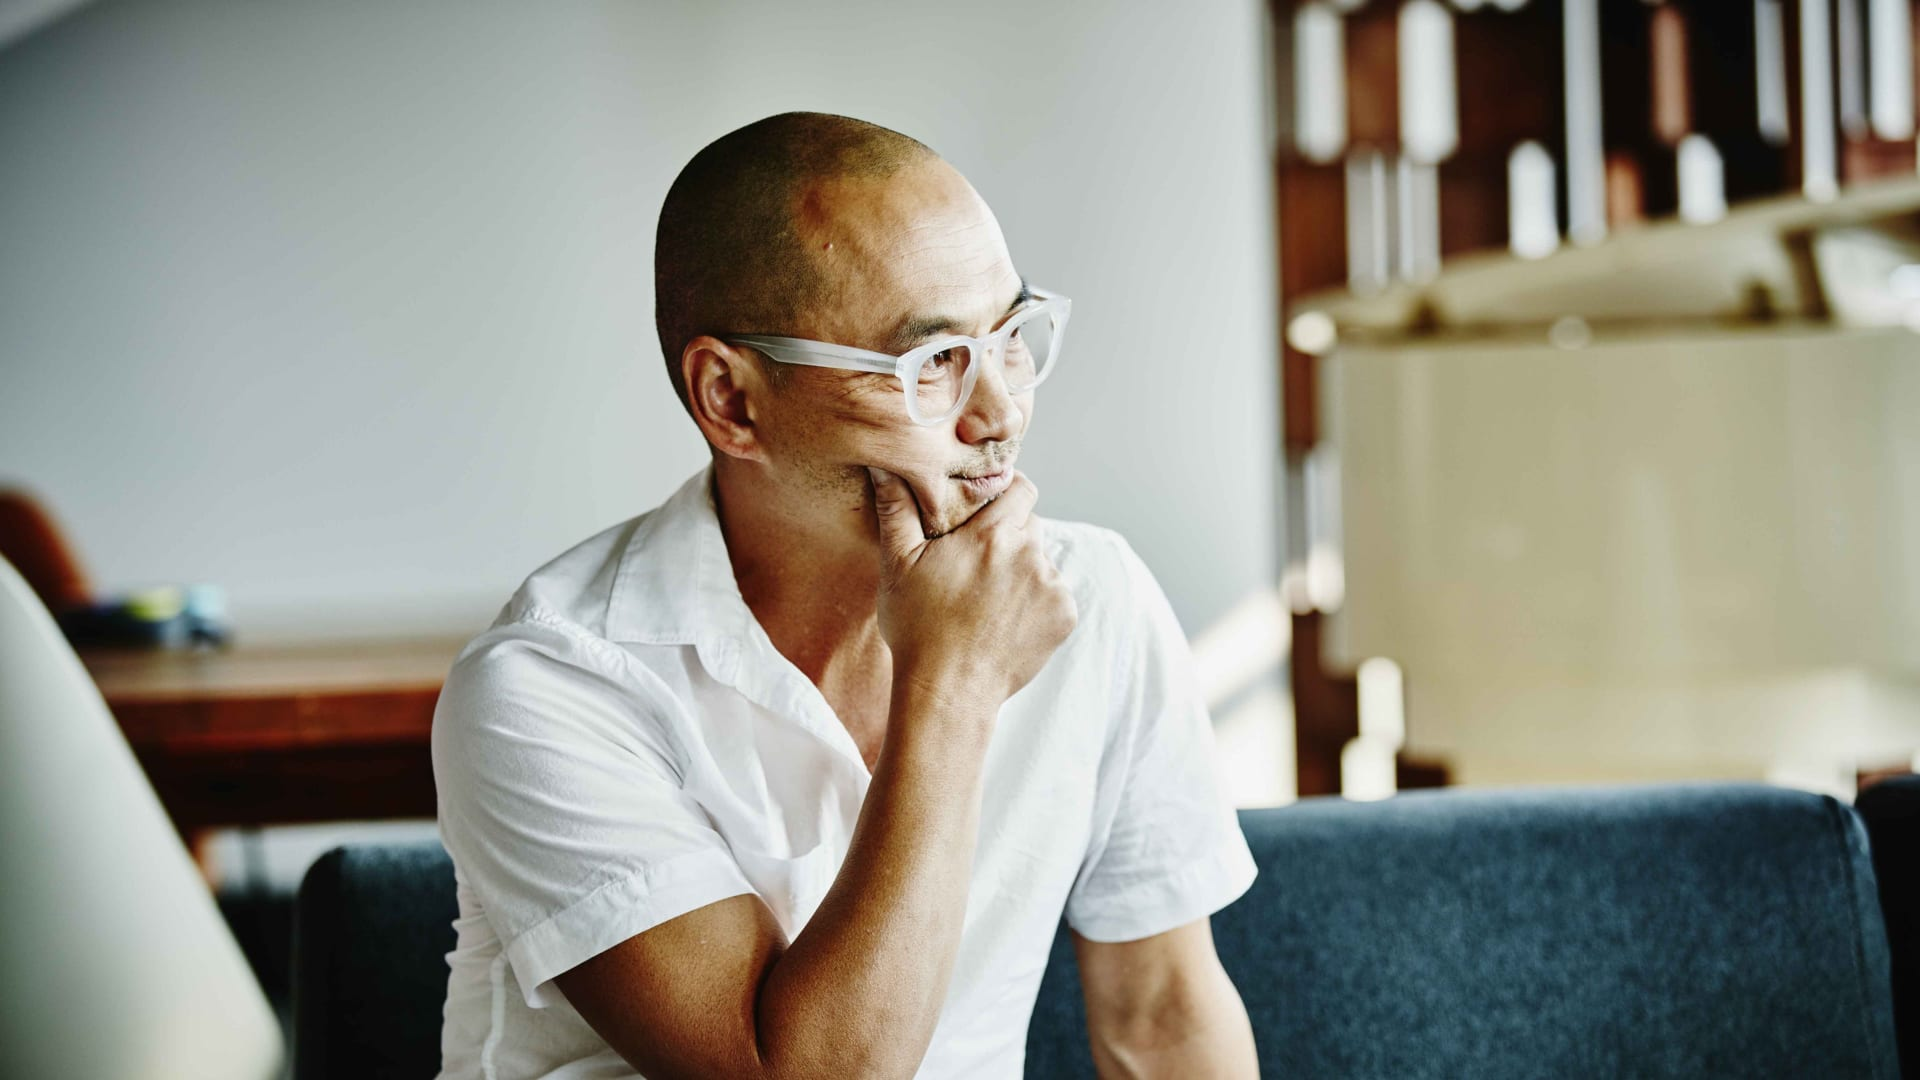 5 Common Urges Among Entrepreneurs That You Must Fight Against to Be Successful